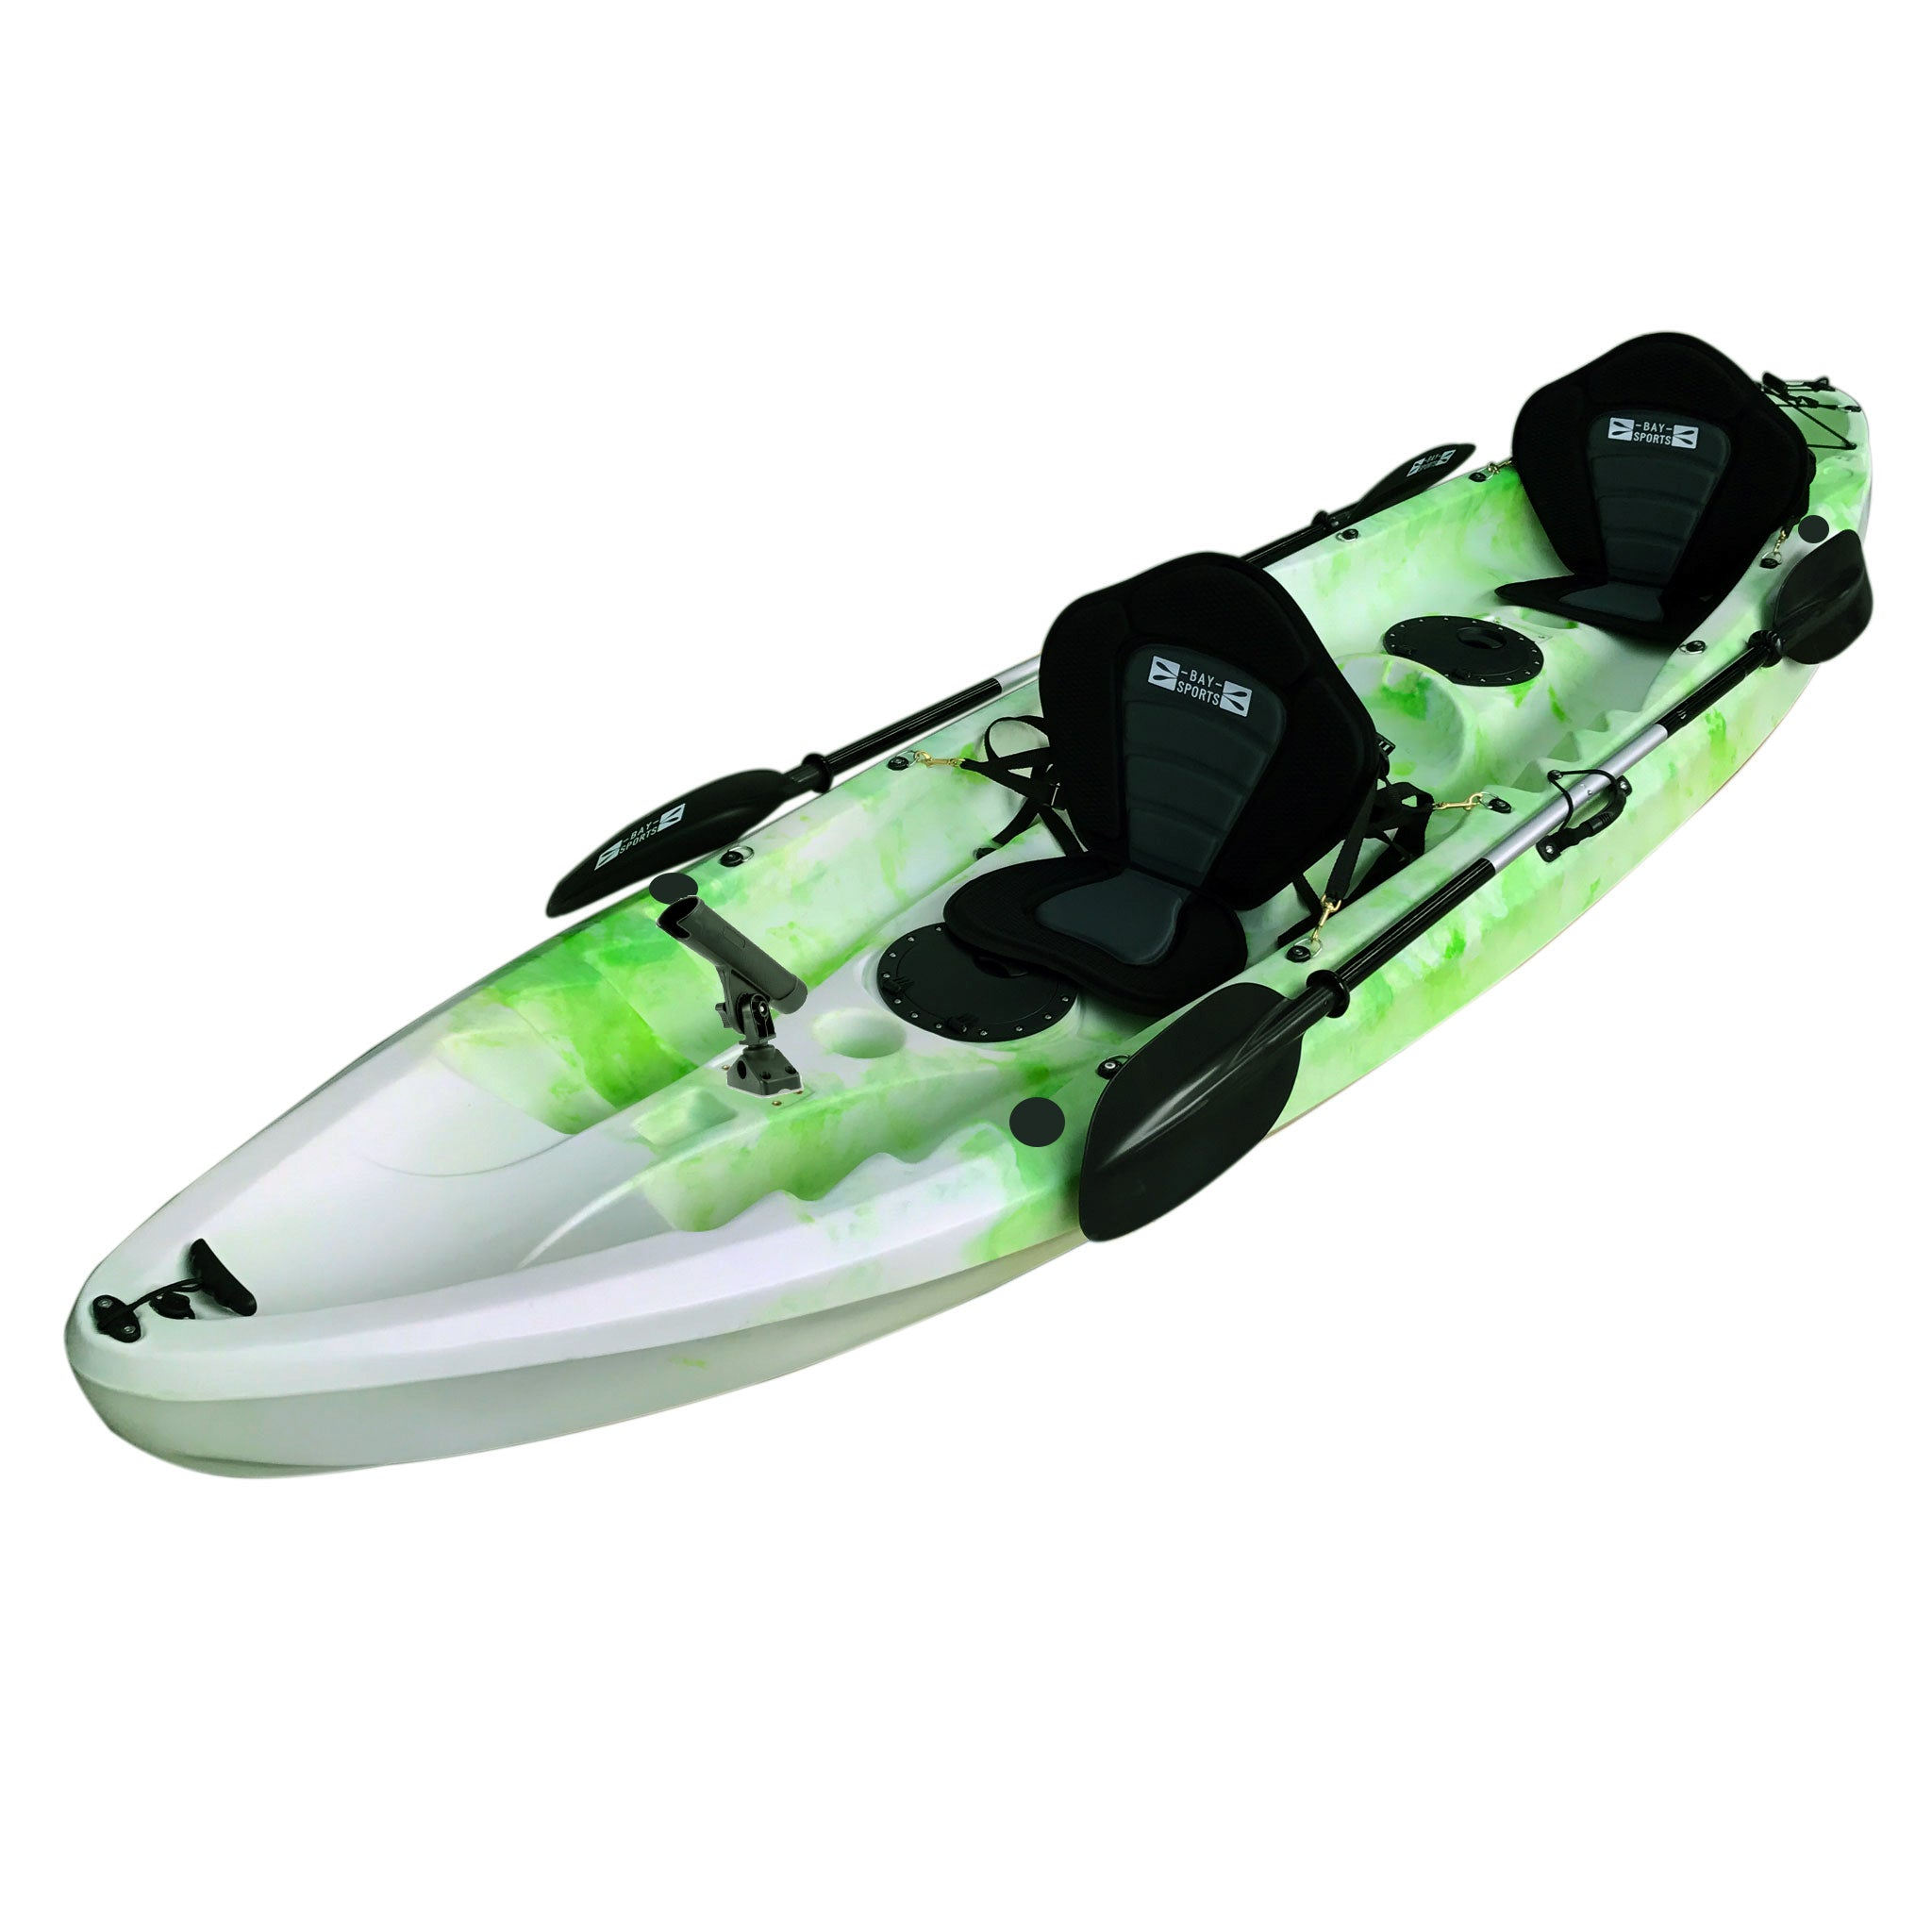 Nereus 2 - 3 7m Sit On Top Family 3-Person Kayak